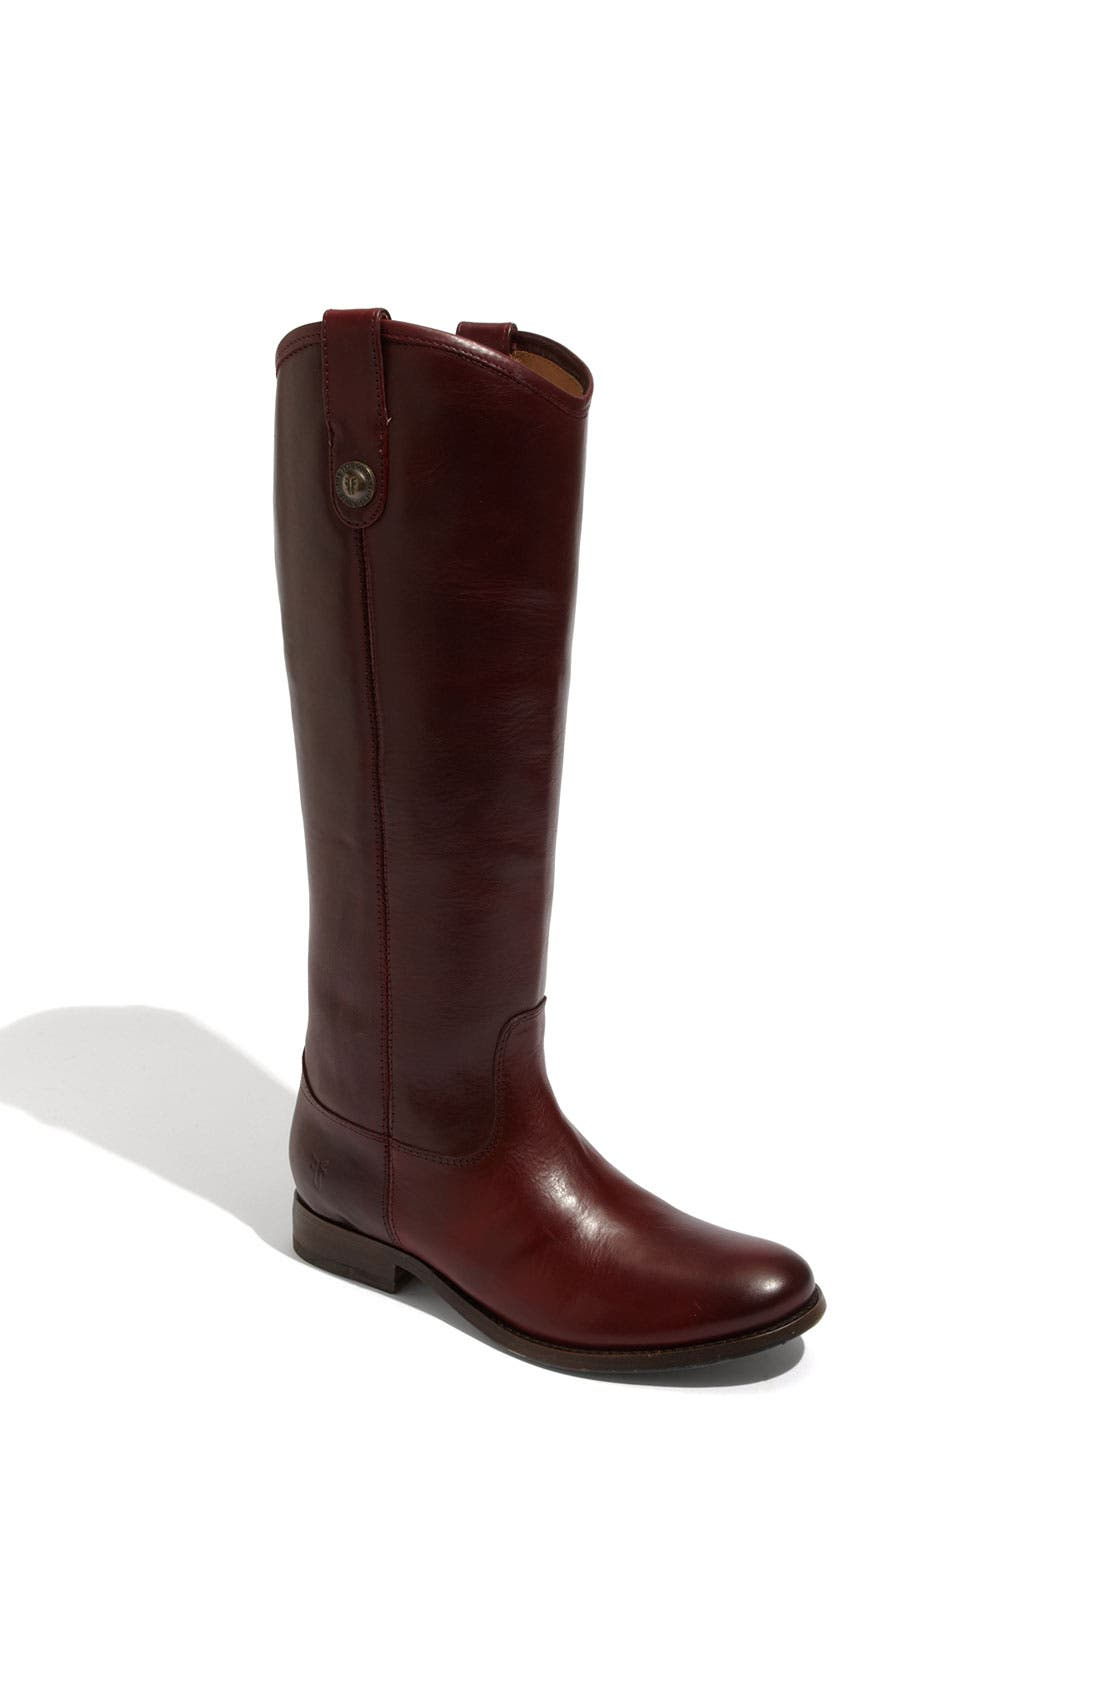 Main Image - Frye 'Melissa Button' Leather Riding Boot (Women)